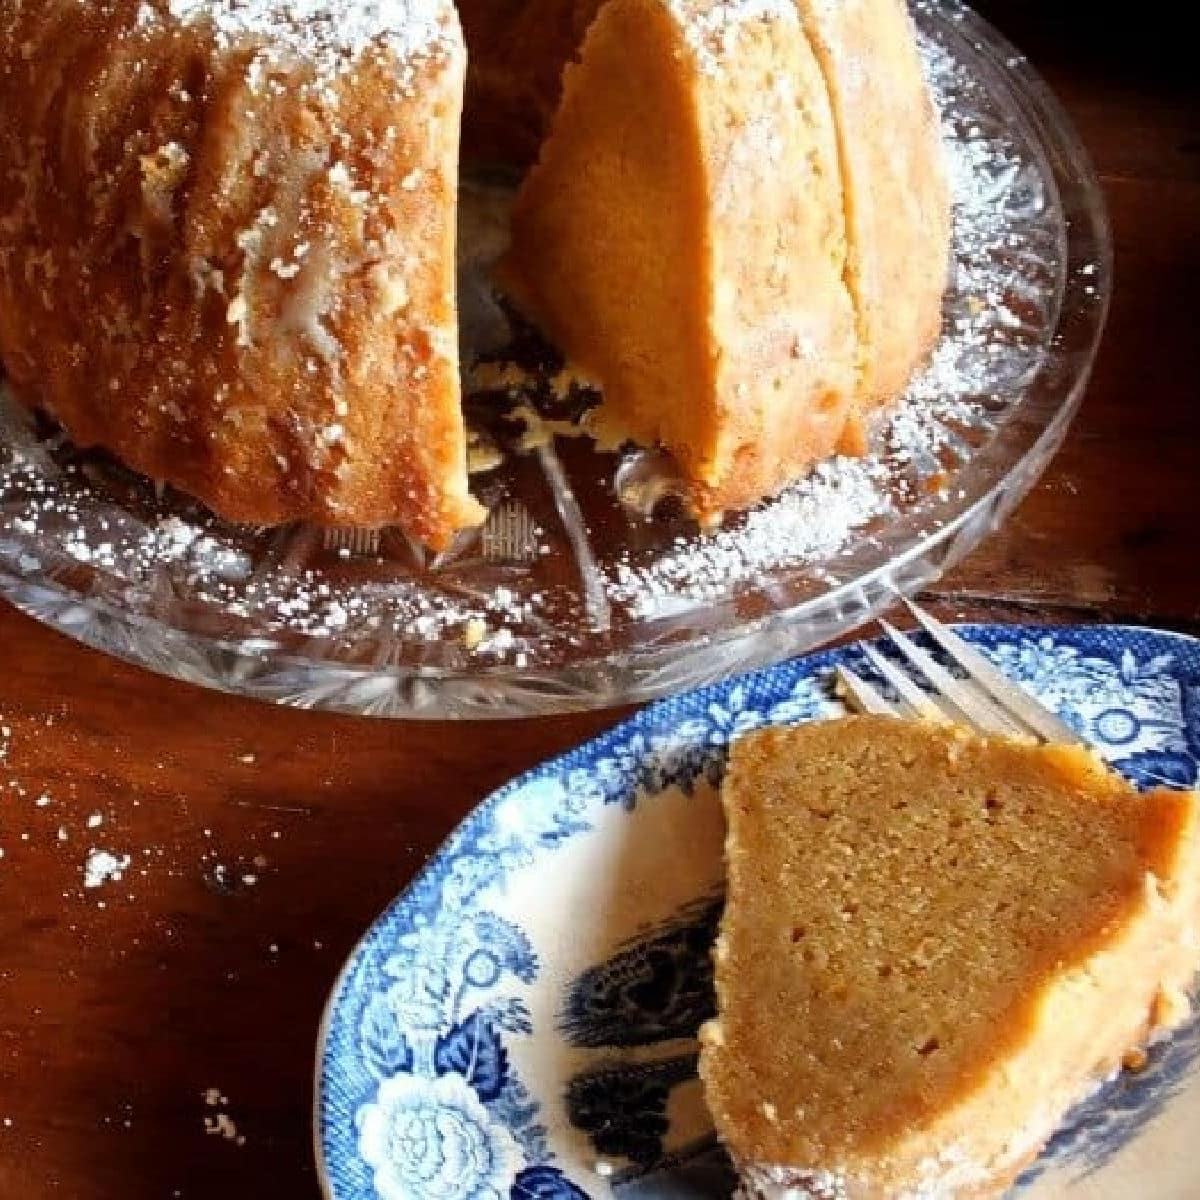 A sweet potato pound cake with a slice removed showing the velvety interior.